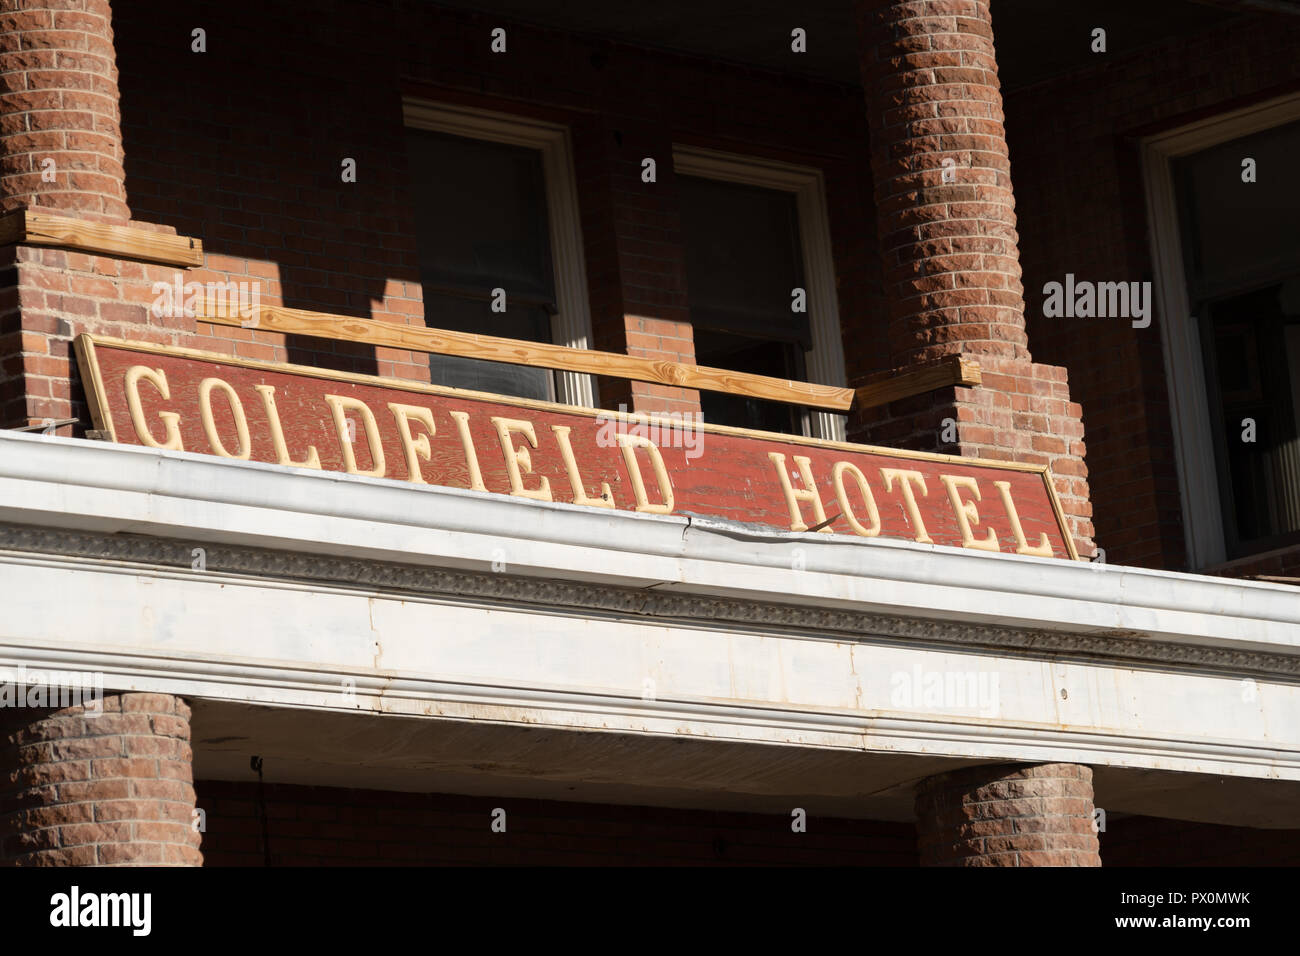 Close up of the Goldfield Hotel sign in Goldfield Nevada. The hotel is abandoned and supposedly haunted - Stock Image